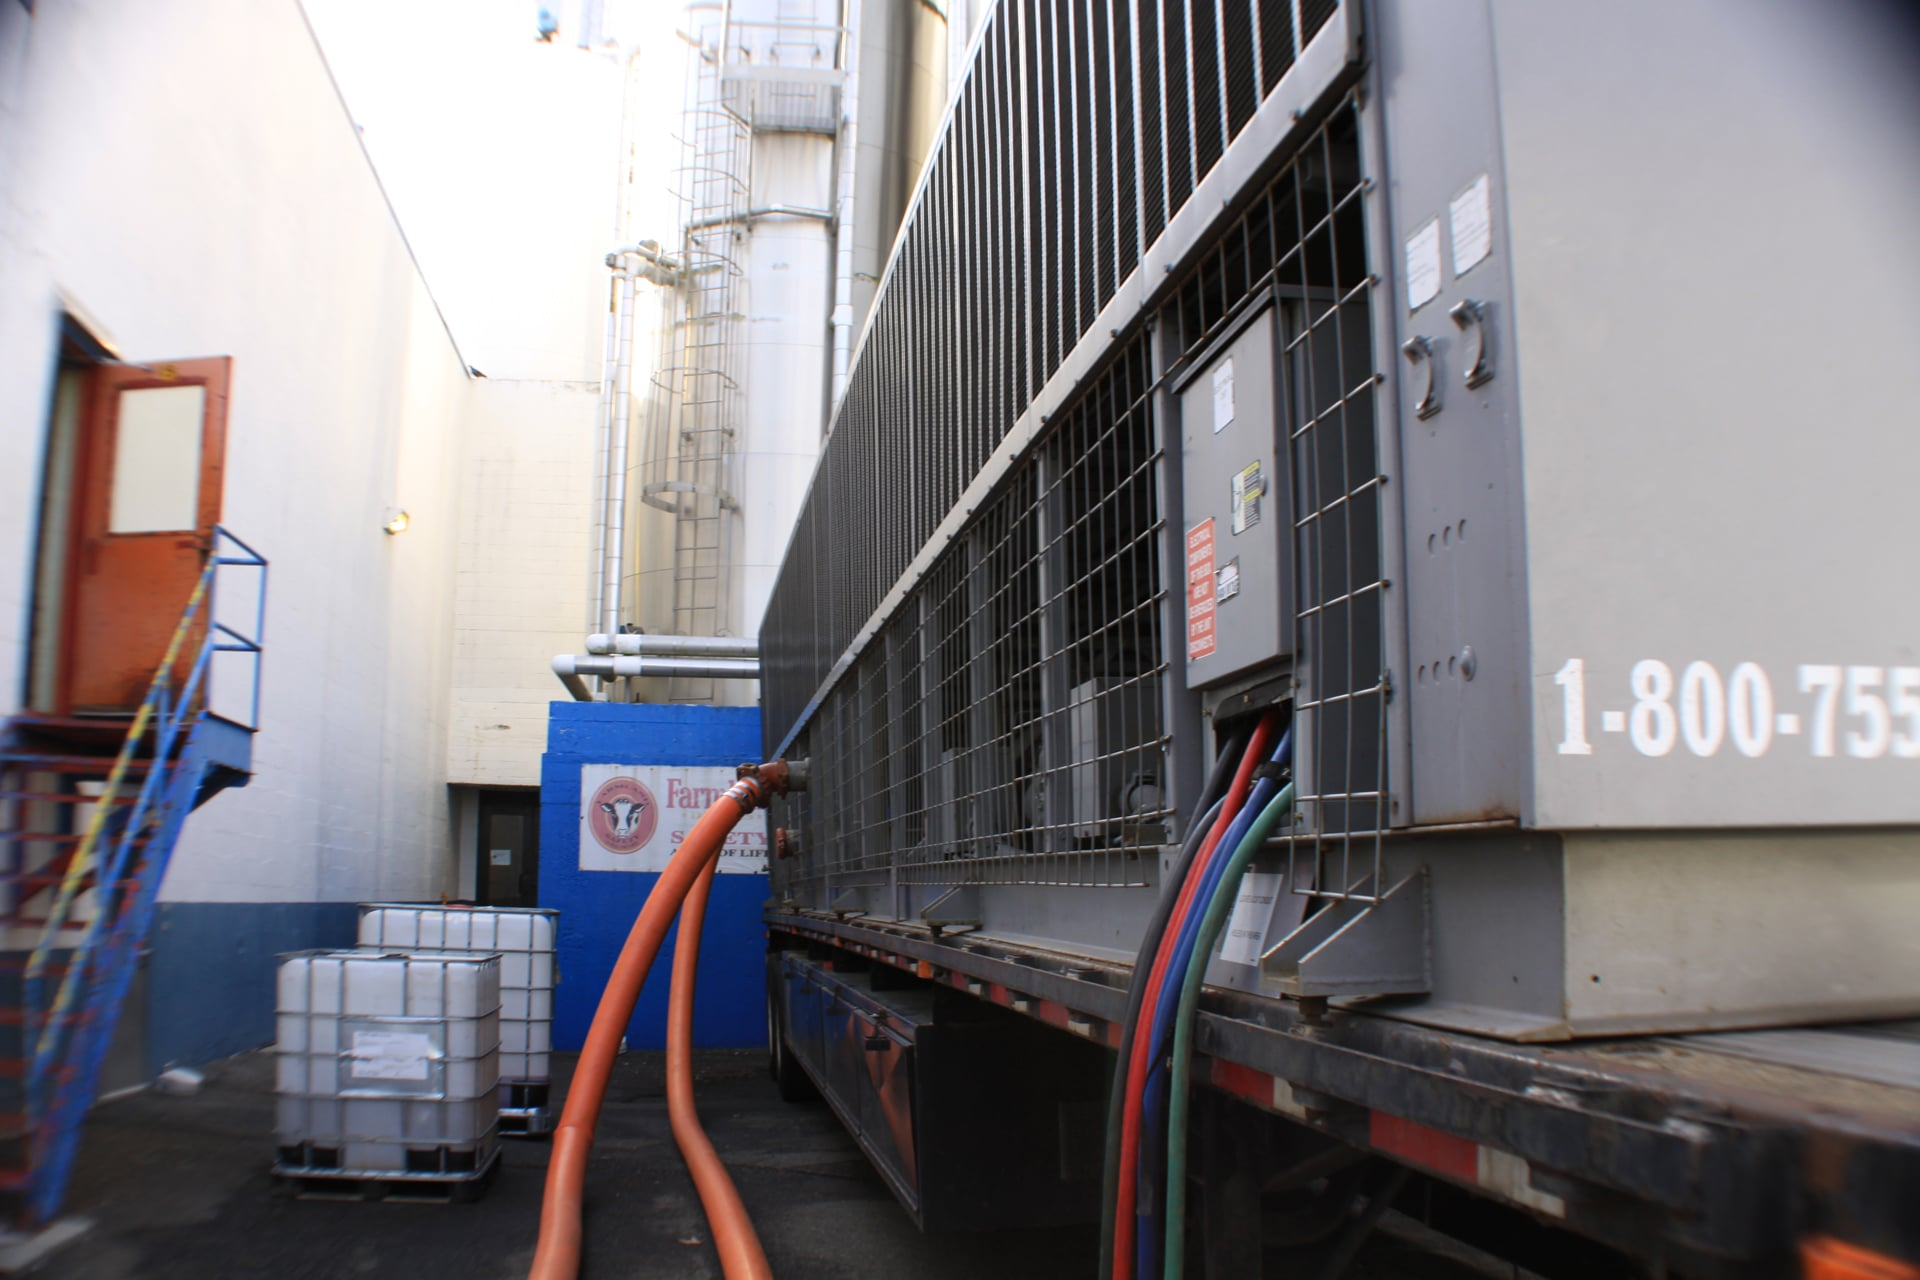 Temporary Chiller Middlesex County NJ, Air Cooled Chiller Rental Middlesex County NJ